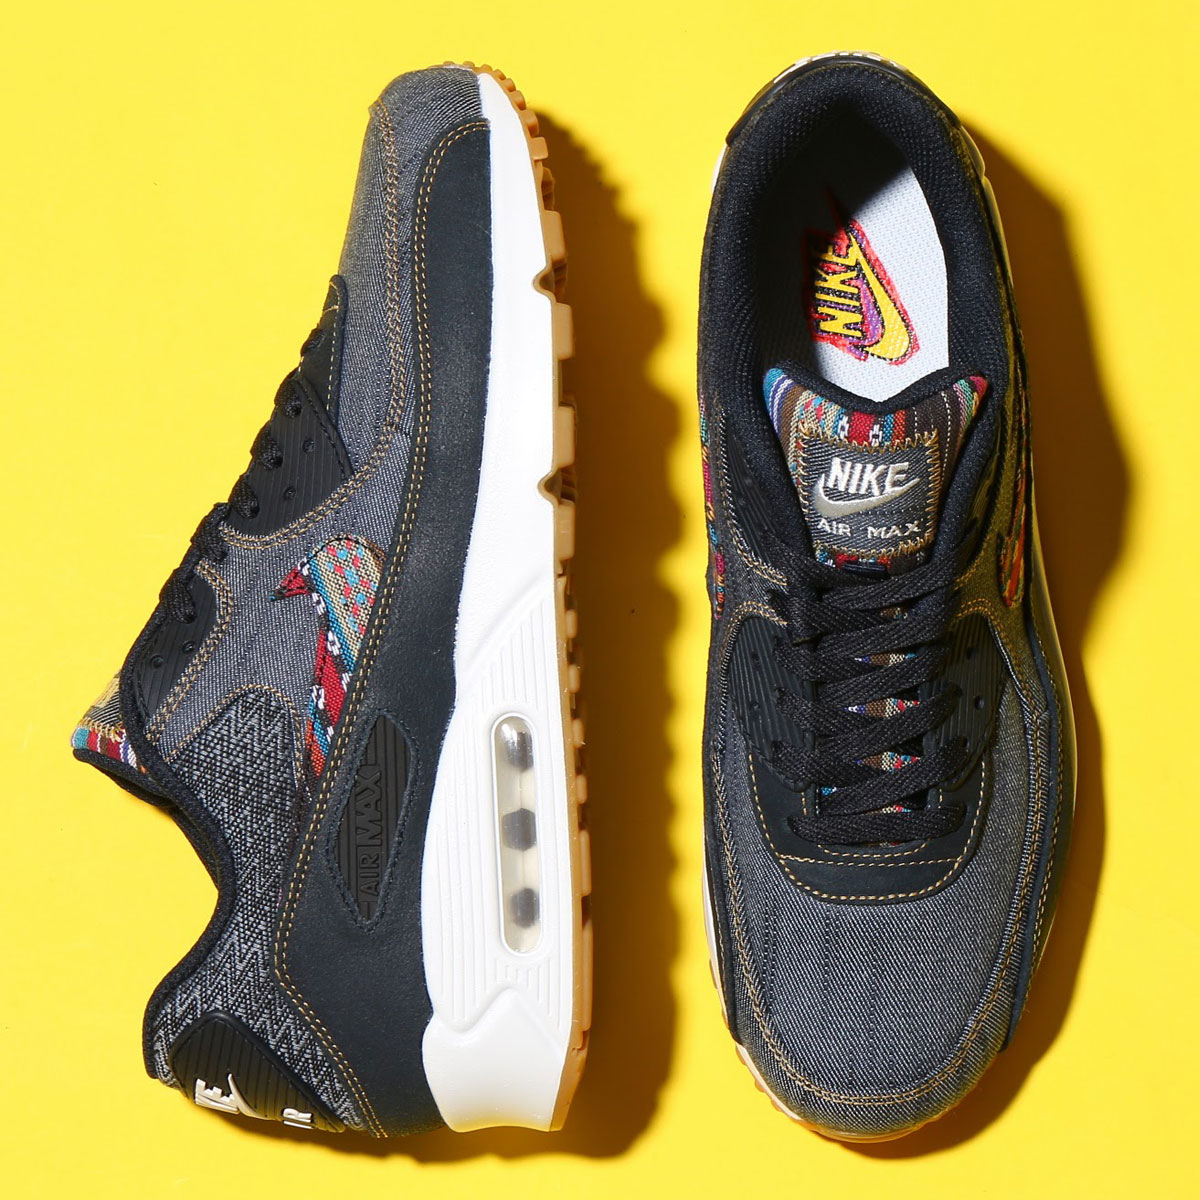 uk availability f8388 fa30c NIKE AIR MAX 90 PREMIUM (Kie Ney AMAX 90 premium) DARK OBSIDIAN DARK ...